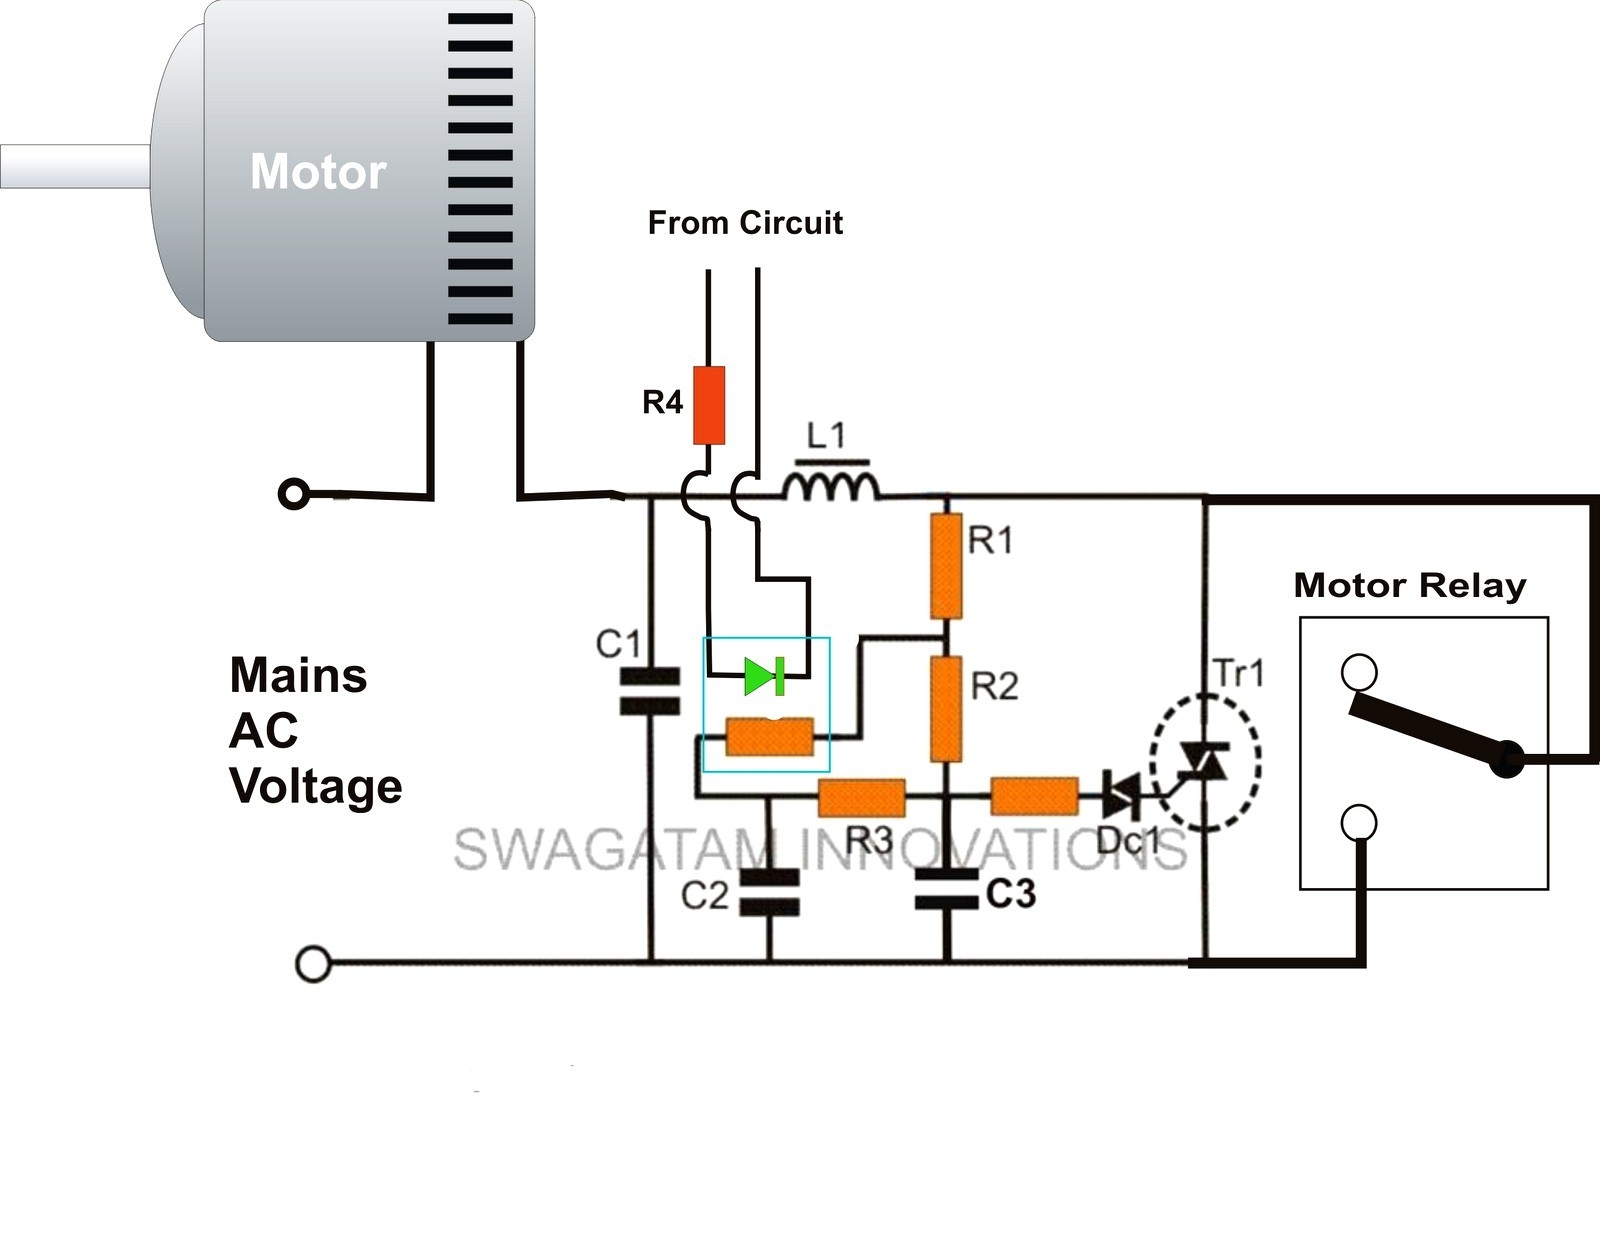 Square D Manual Motor Starter Wiring Diagram | Free Wiring ... on